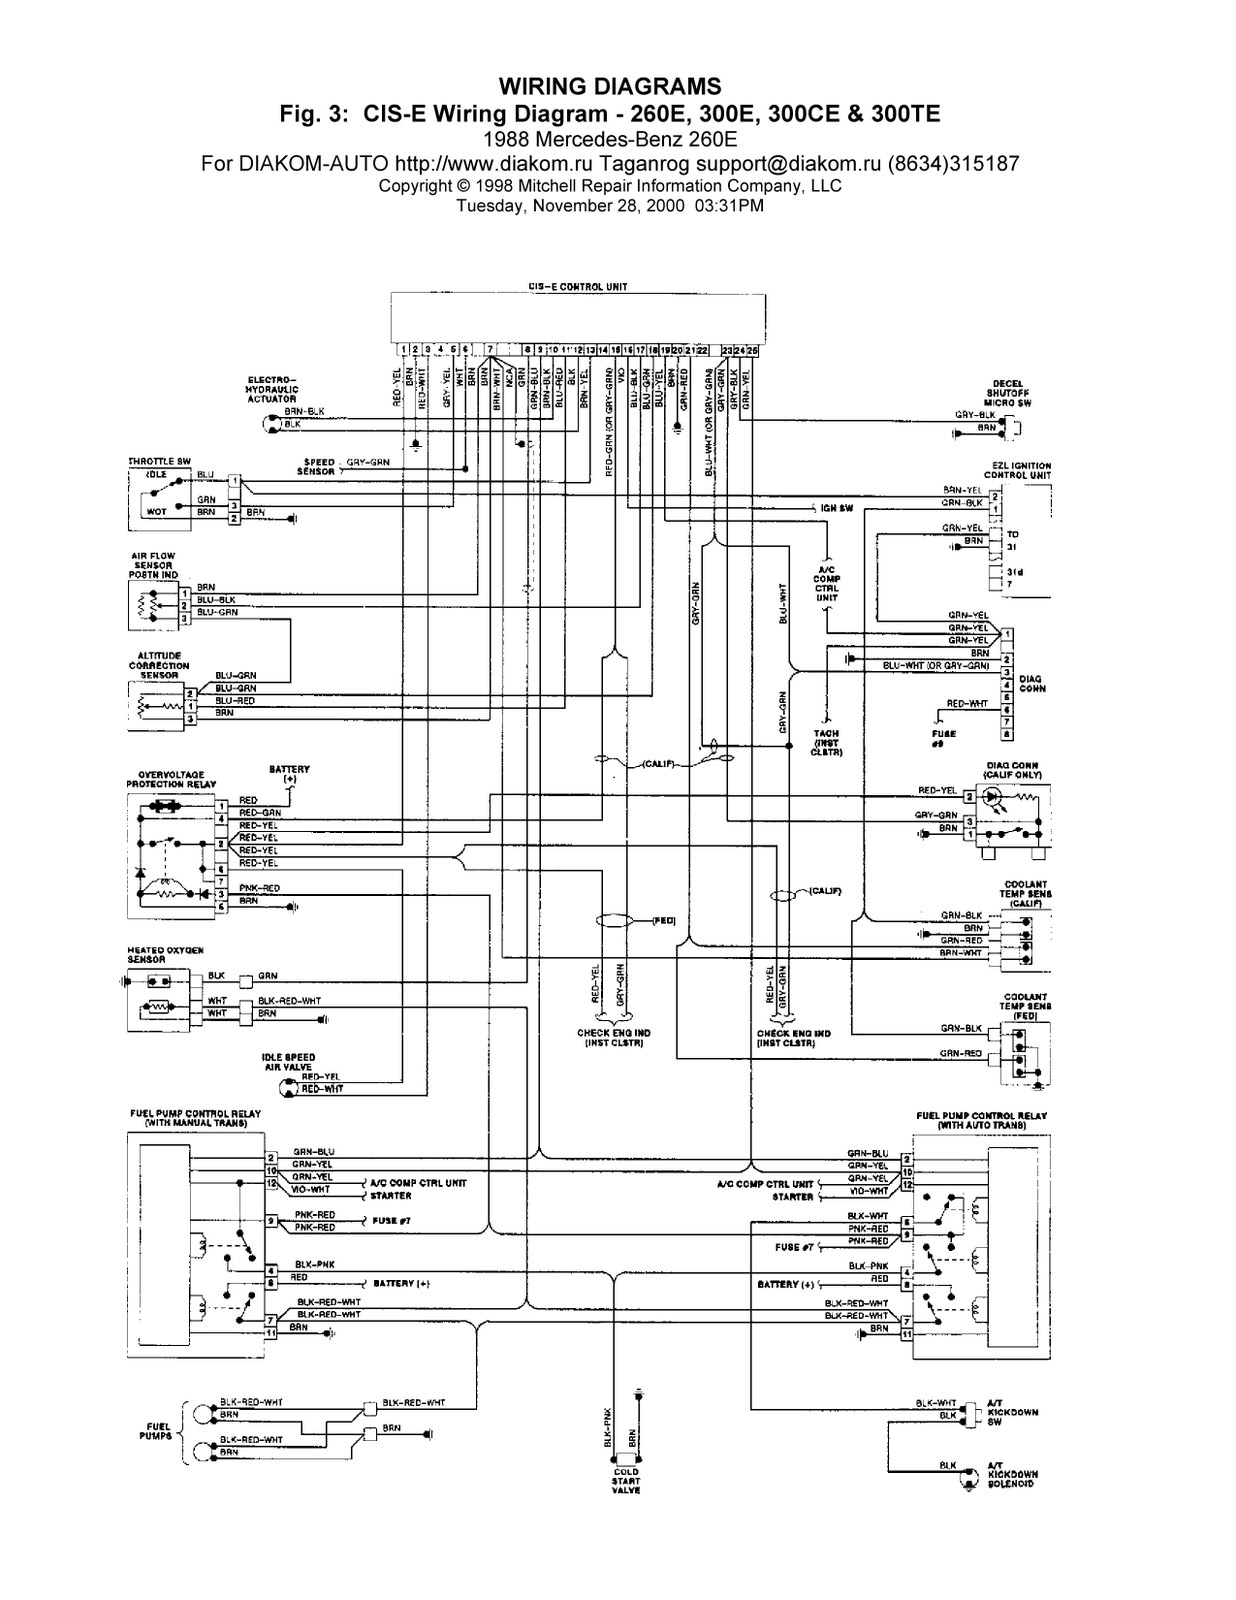 Wiring Diagram Mercedes Audio 20 : Mercedes r wiring diagram